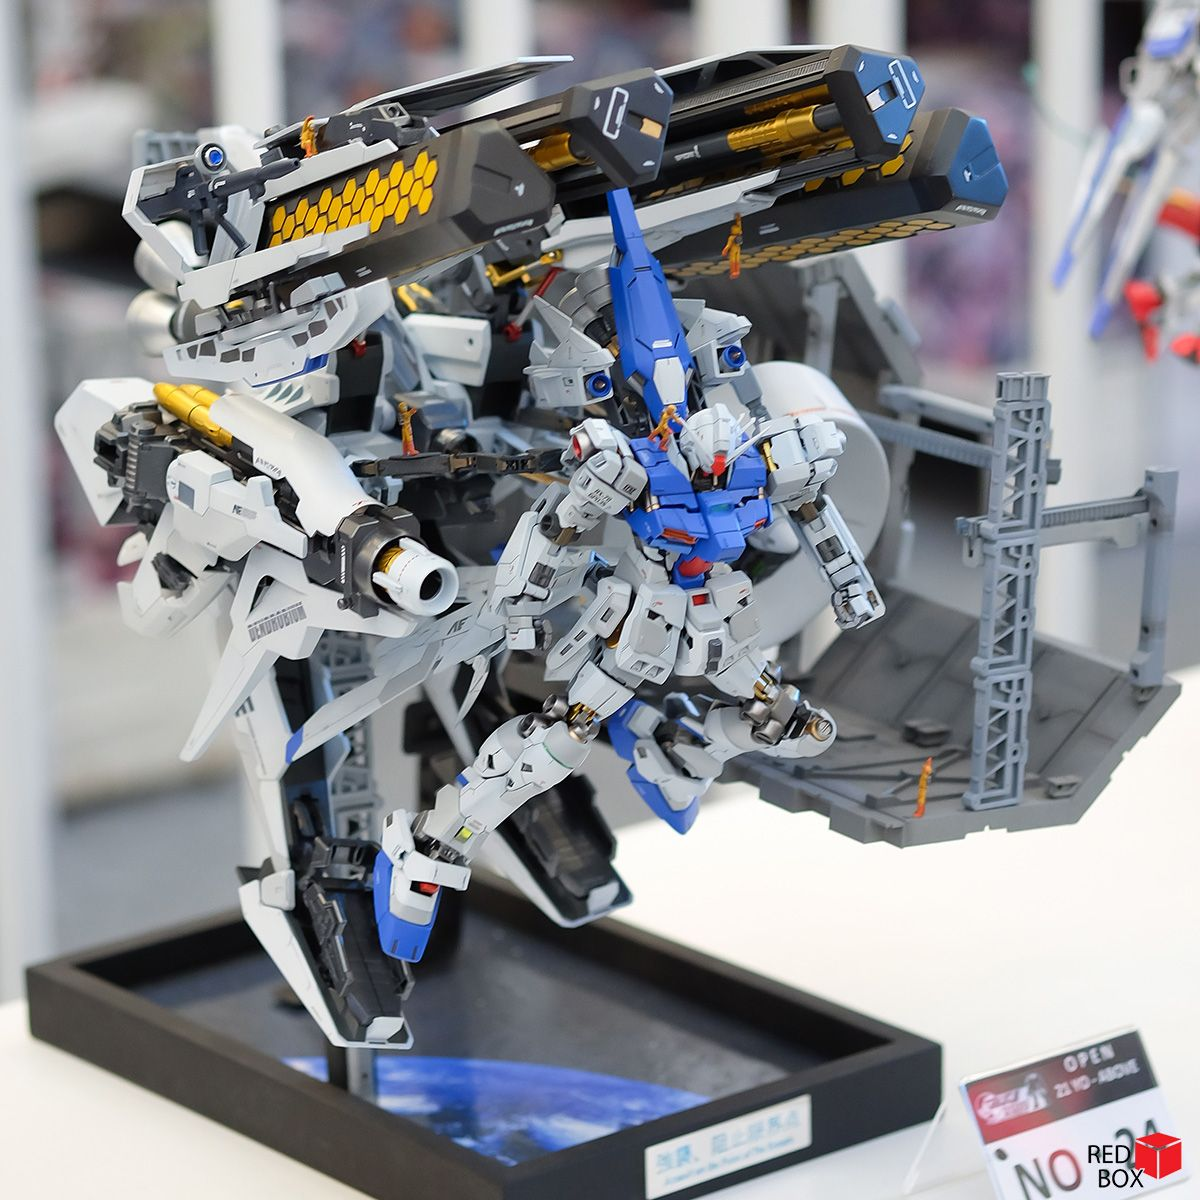 Gunpla Builders World Cup (GBWC) 2015 Indonesia - Image Gallery [Part 8]  [Images by Red Box]